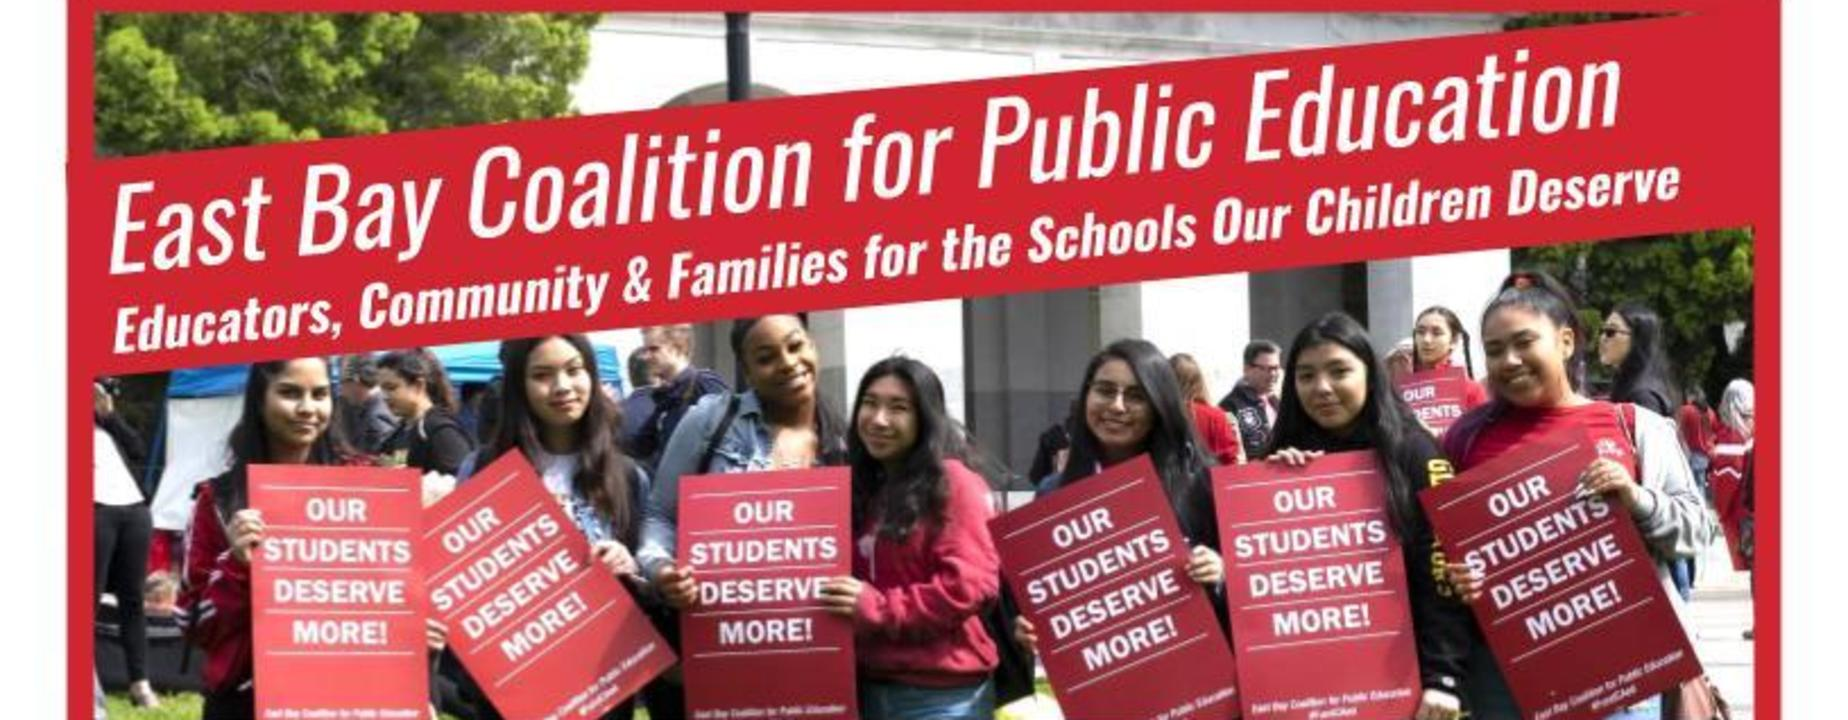 East Bay Coalition flyer with students